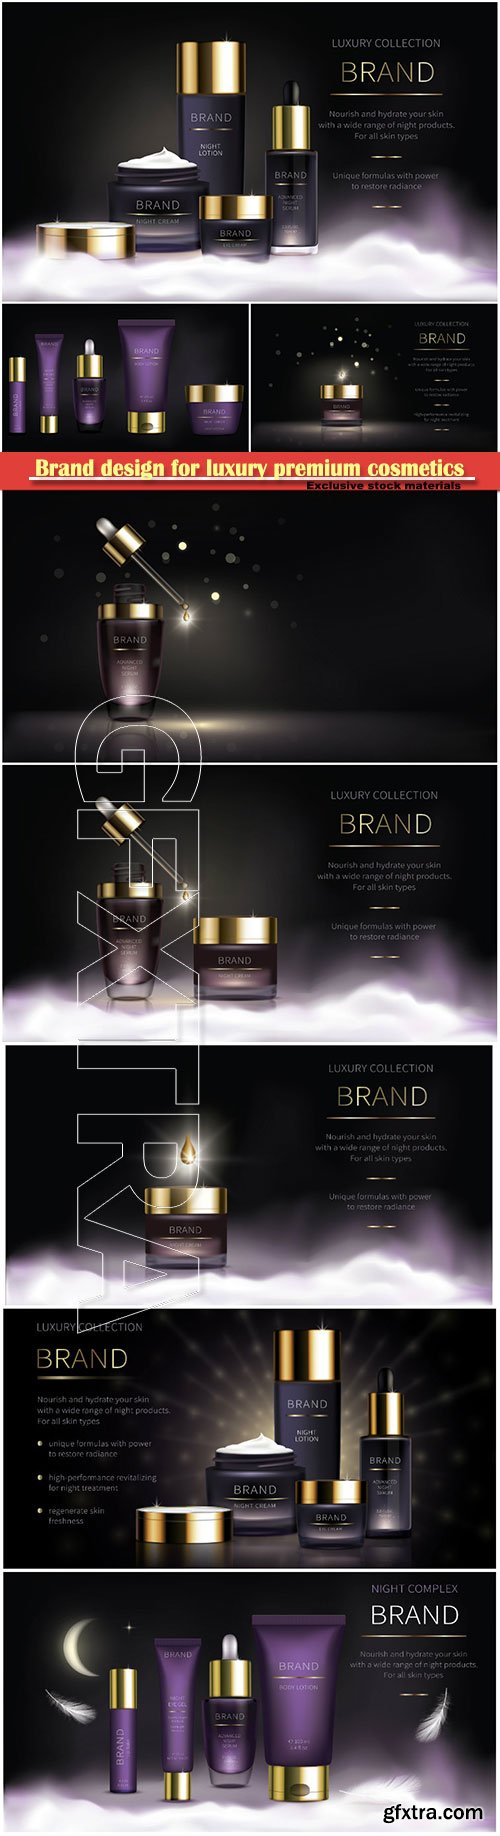 Brand design for luxury premium cosmetics, series for face skin care, realistic vector